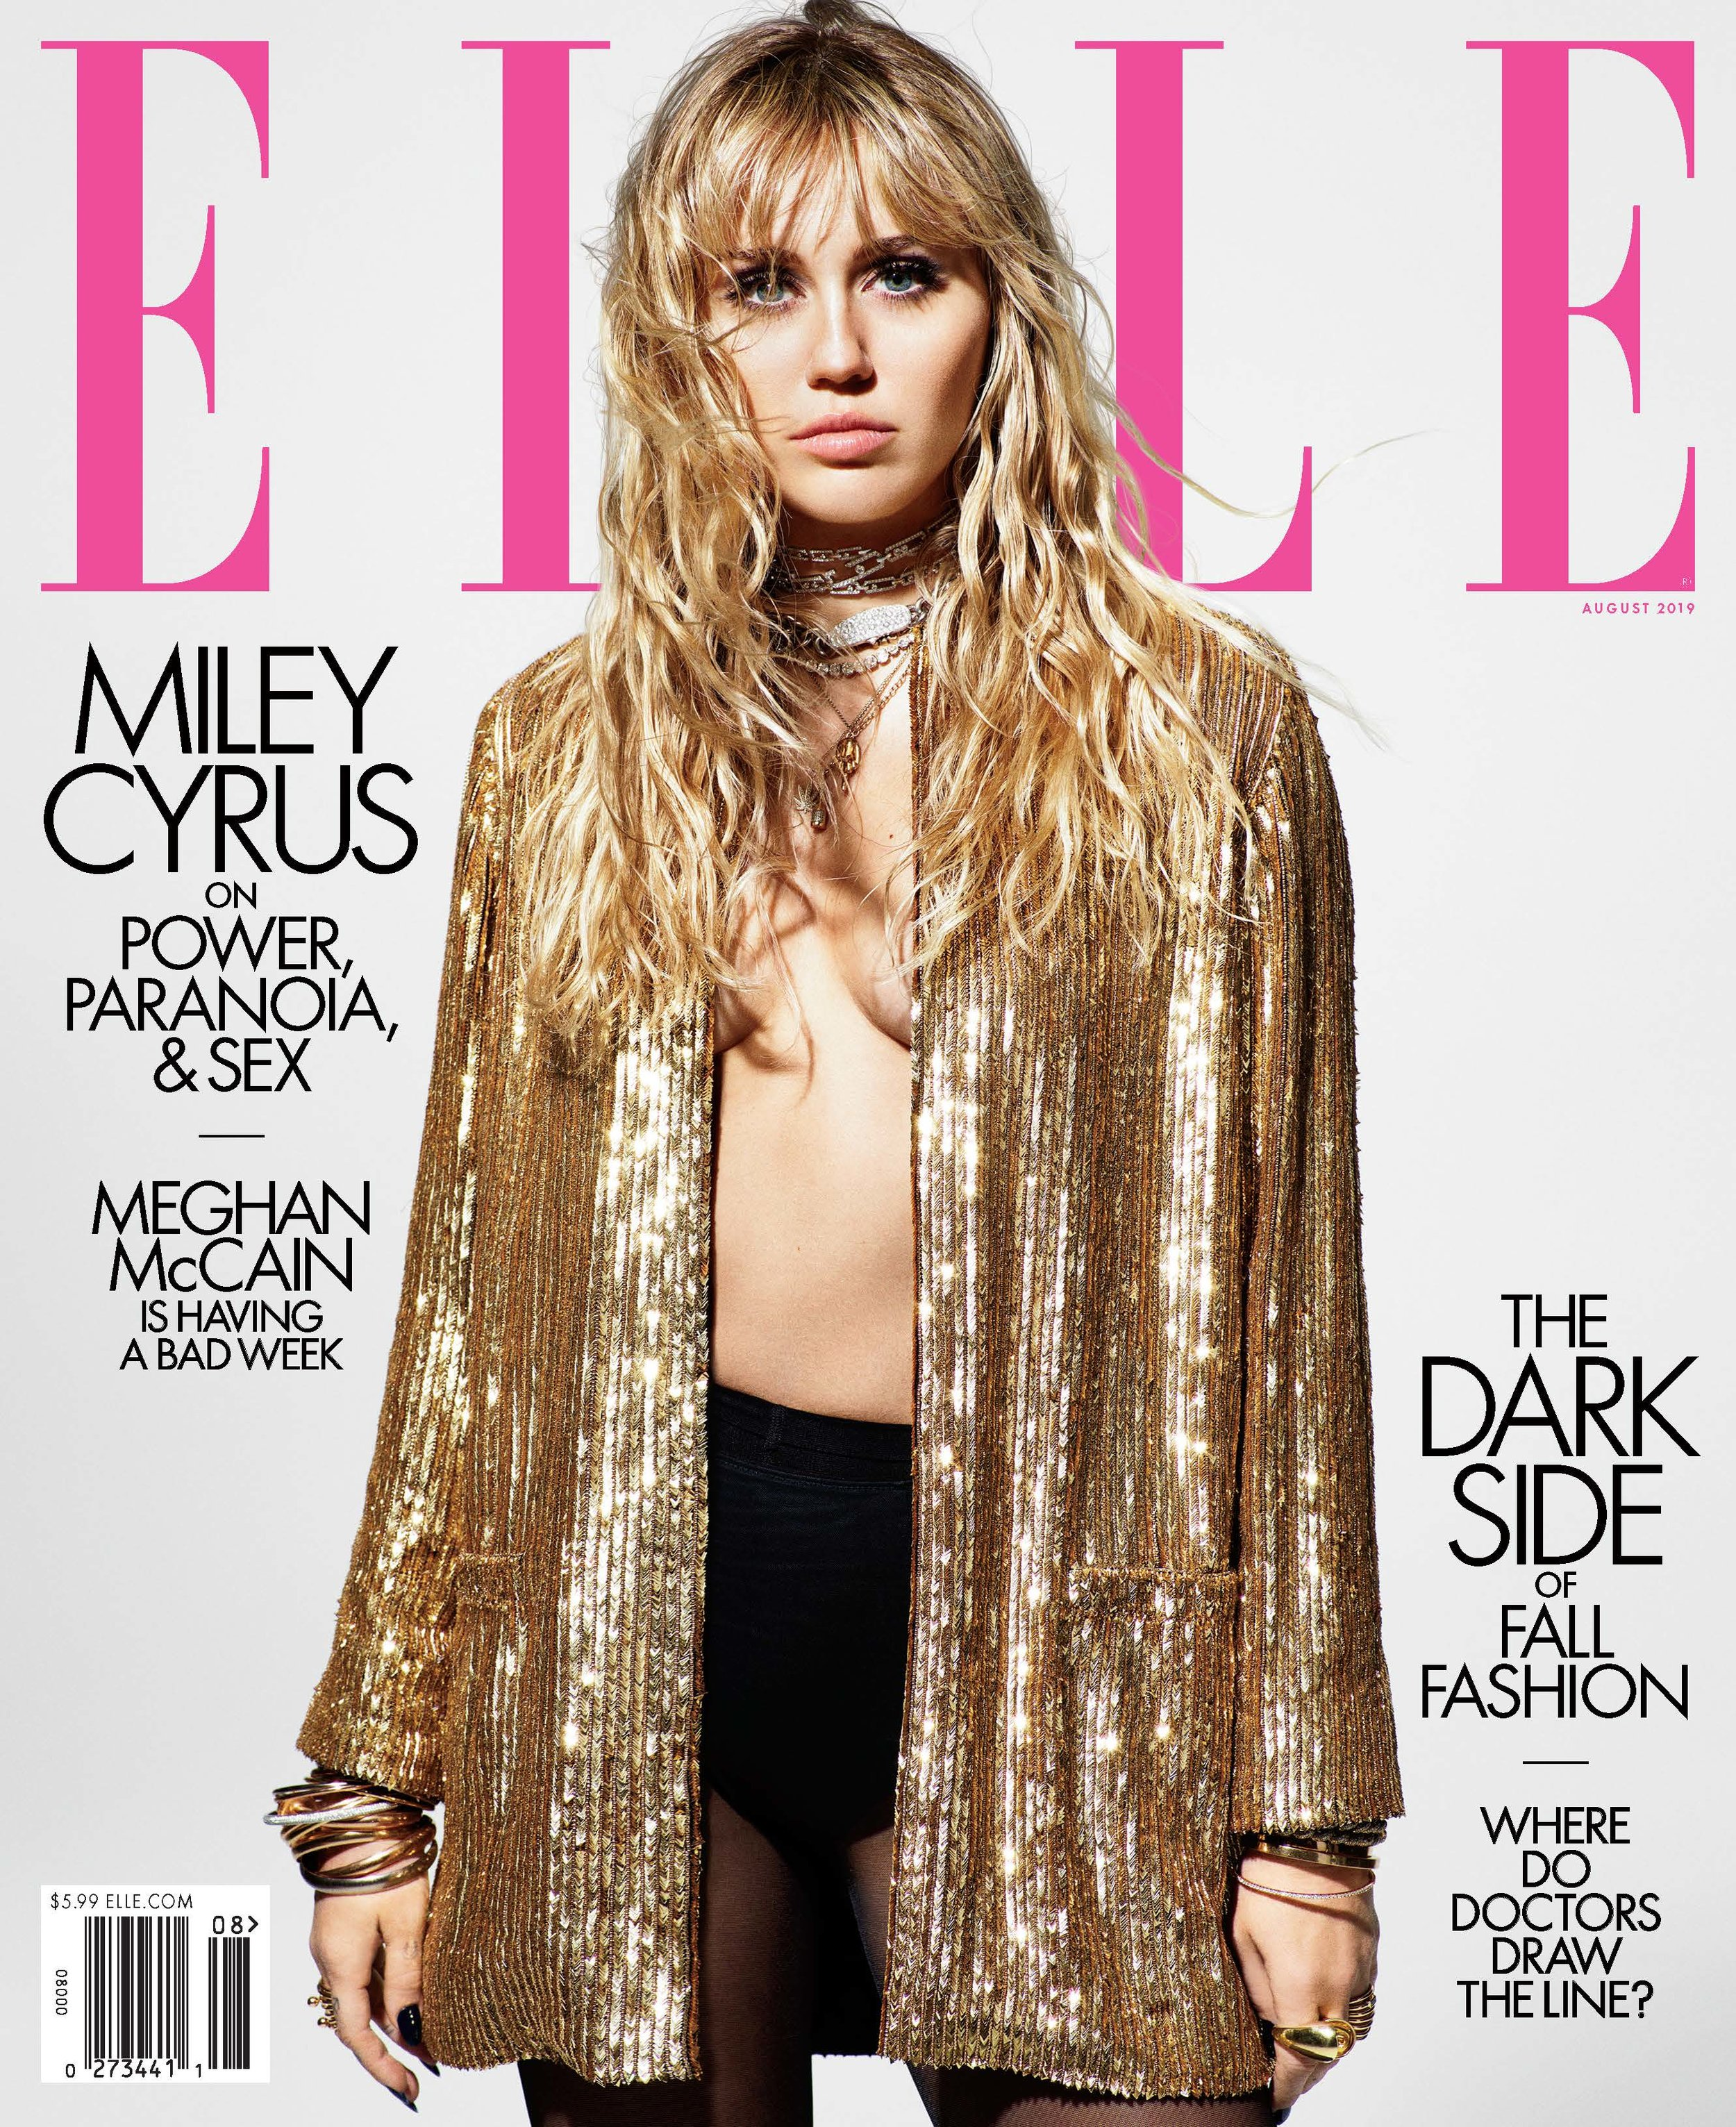 Miley Cyrus wears VRAM Jewelry Elle Magazine Cover